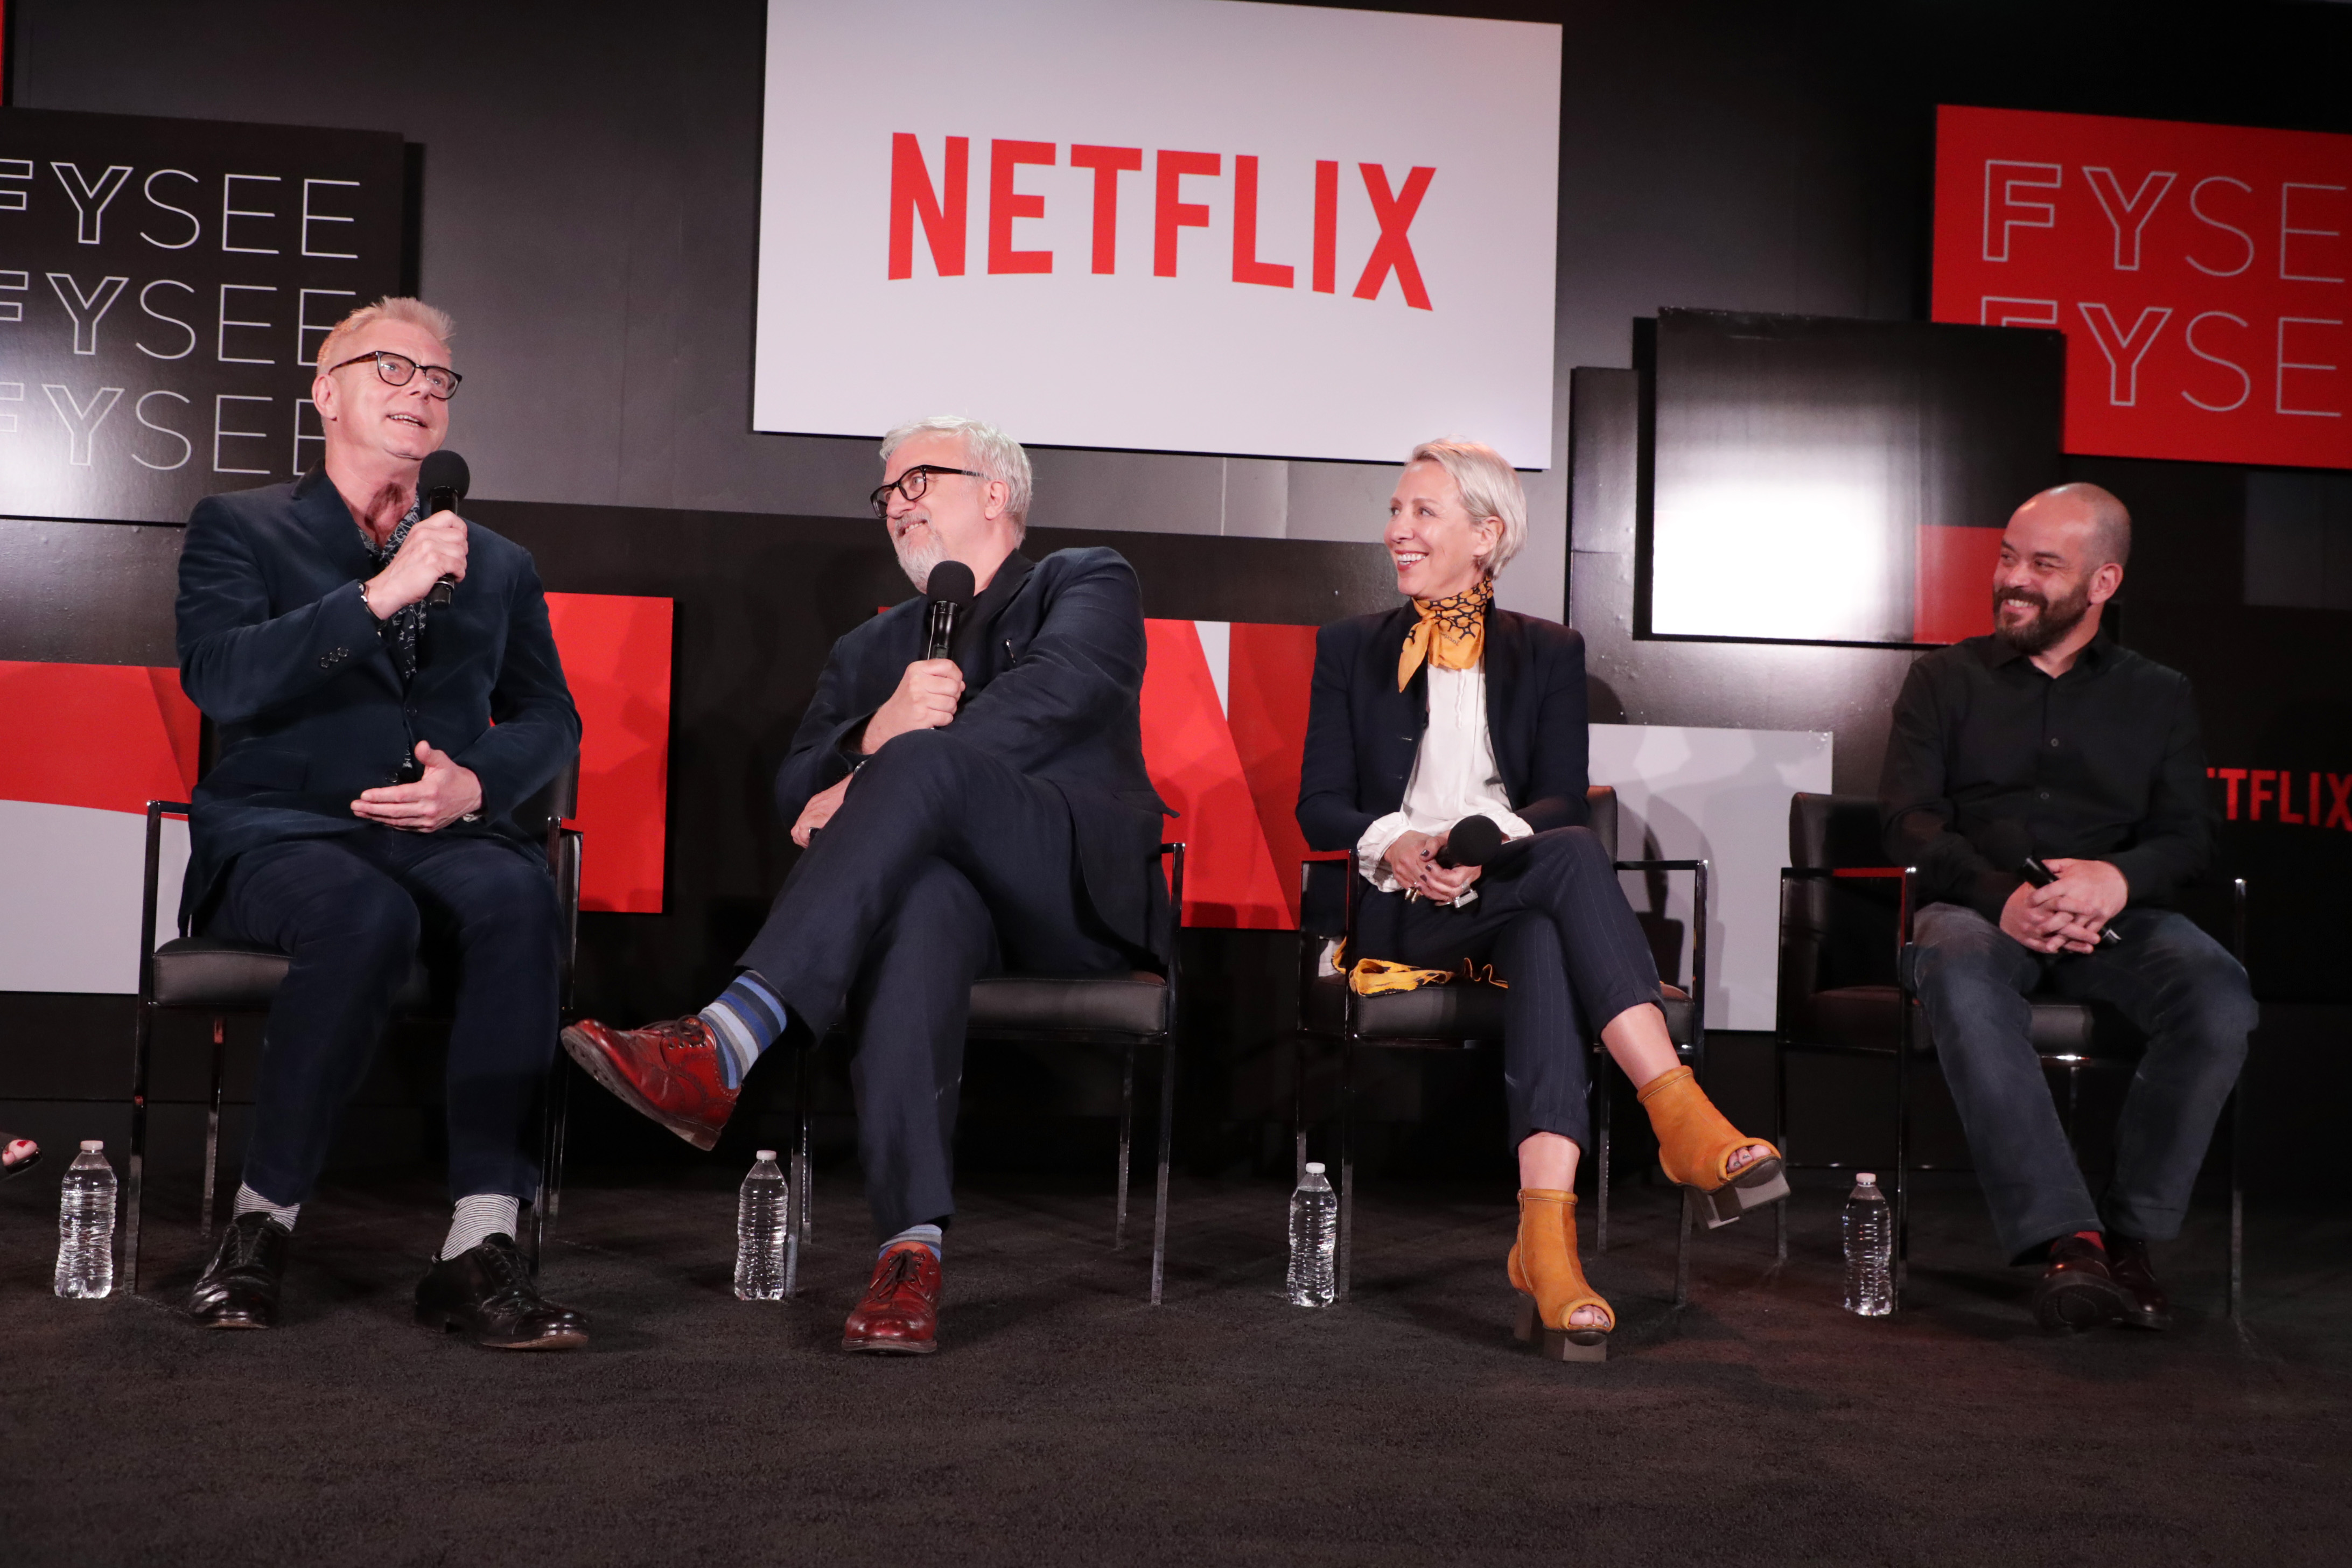 Stephen Daldry, Martin Childs, Michele Clapton, Adriano Goldman'The Crown' panel Q and A, Netflix FYSee exhibit space, Los Angeles, USA - 18 May 2017